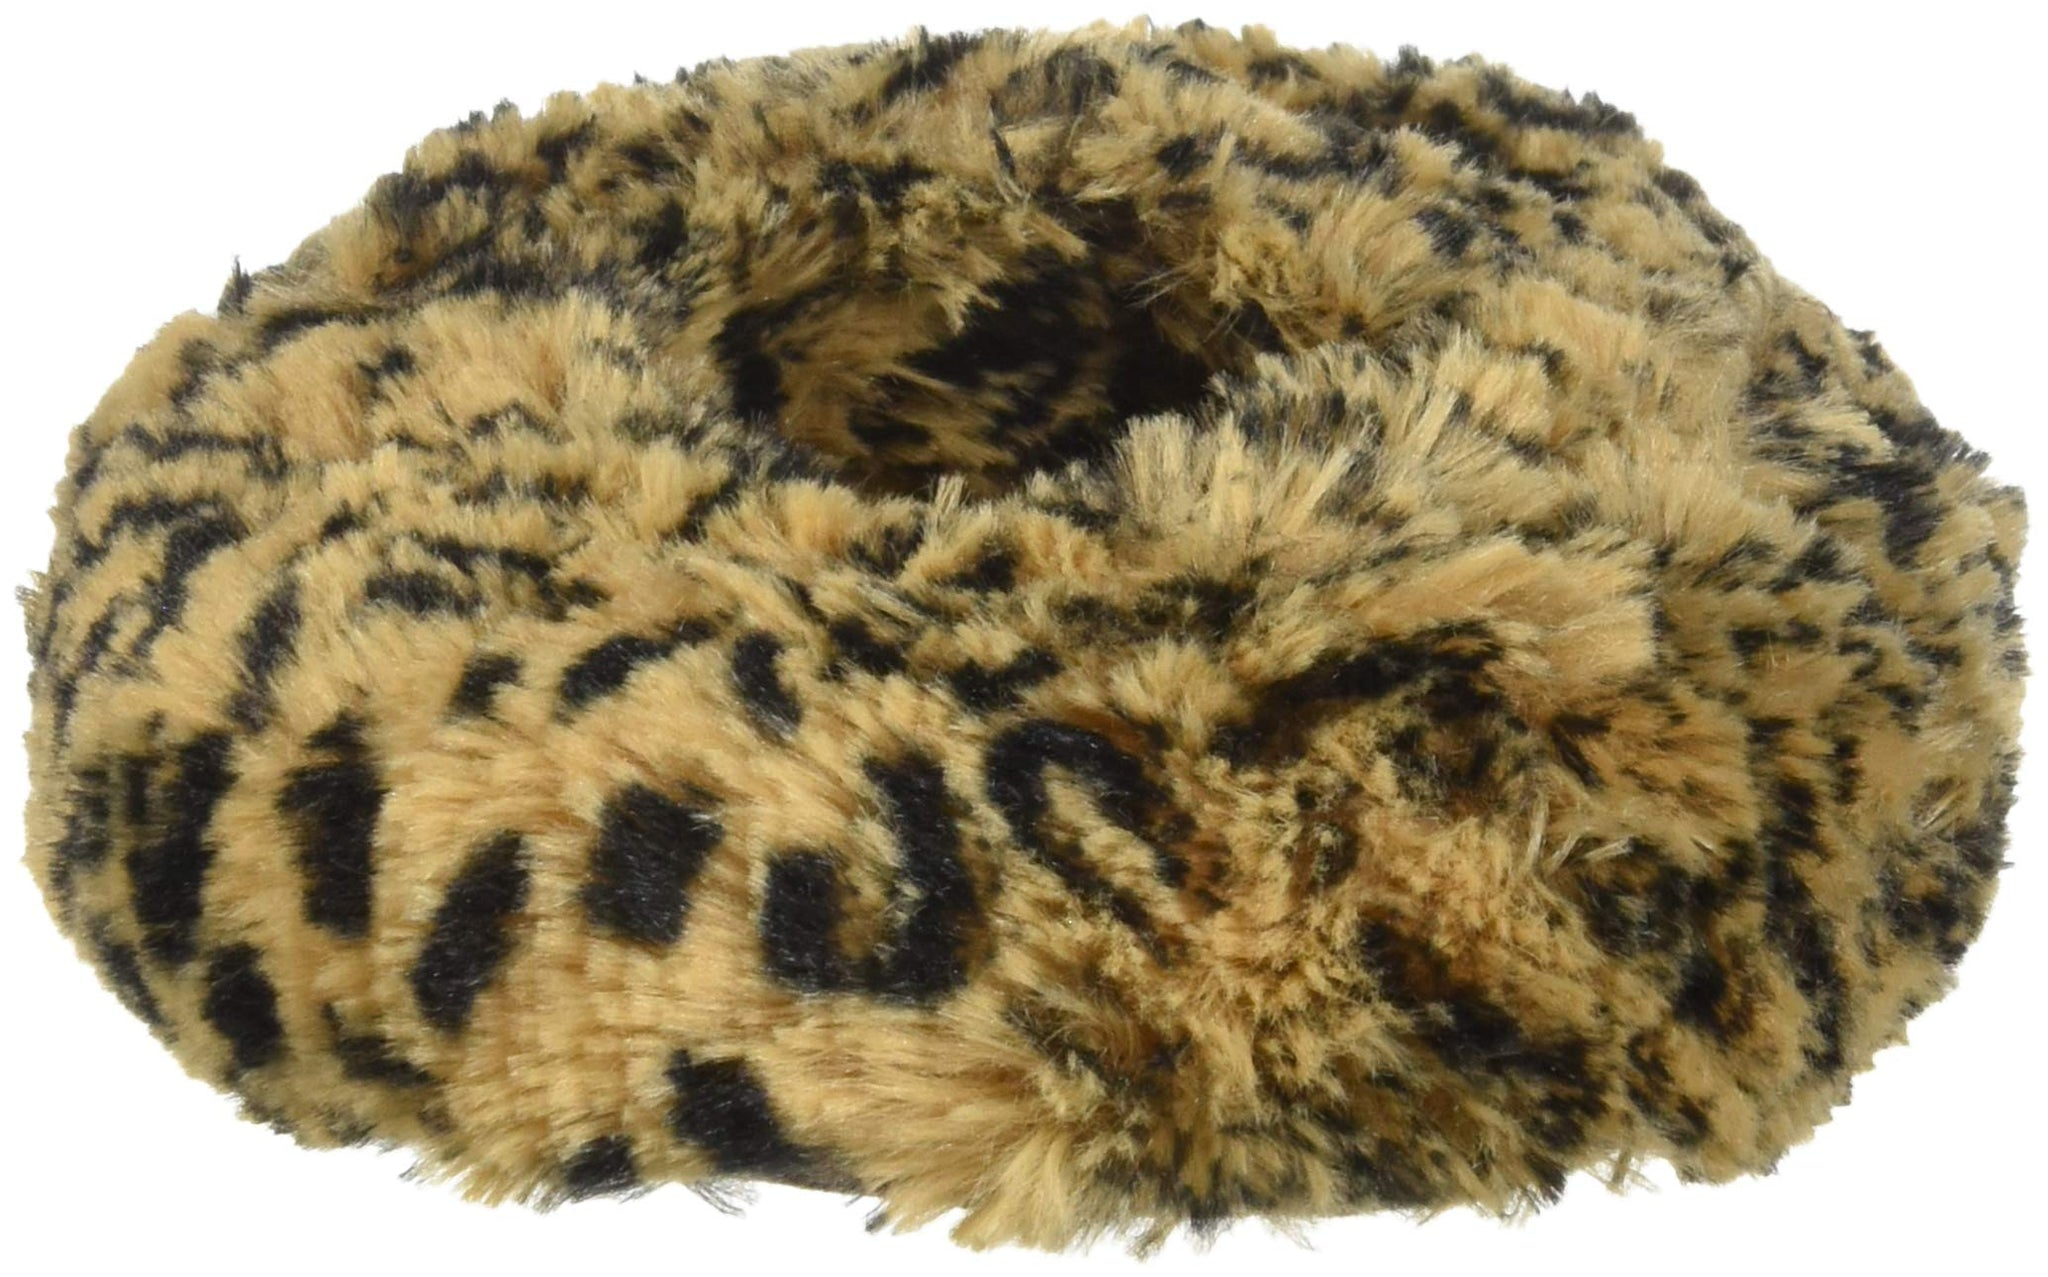 Intelex Fully Microwavable Luxury Cozy Slippers Leopard